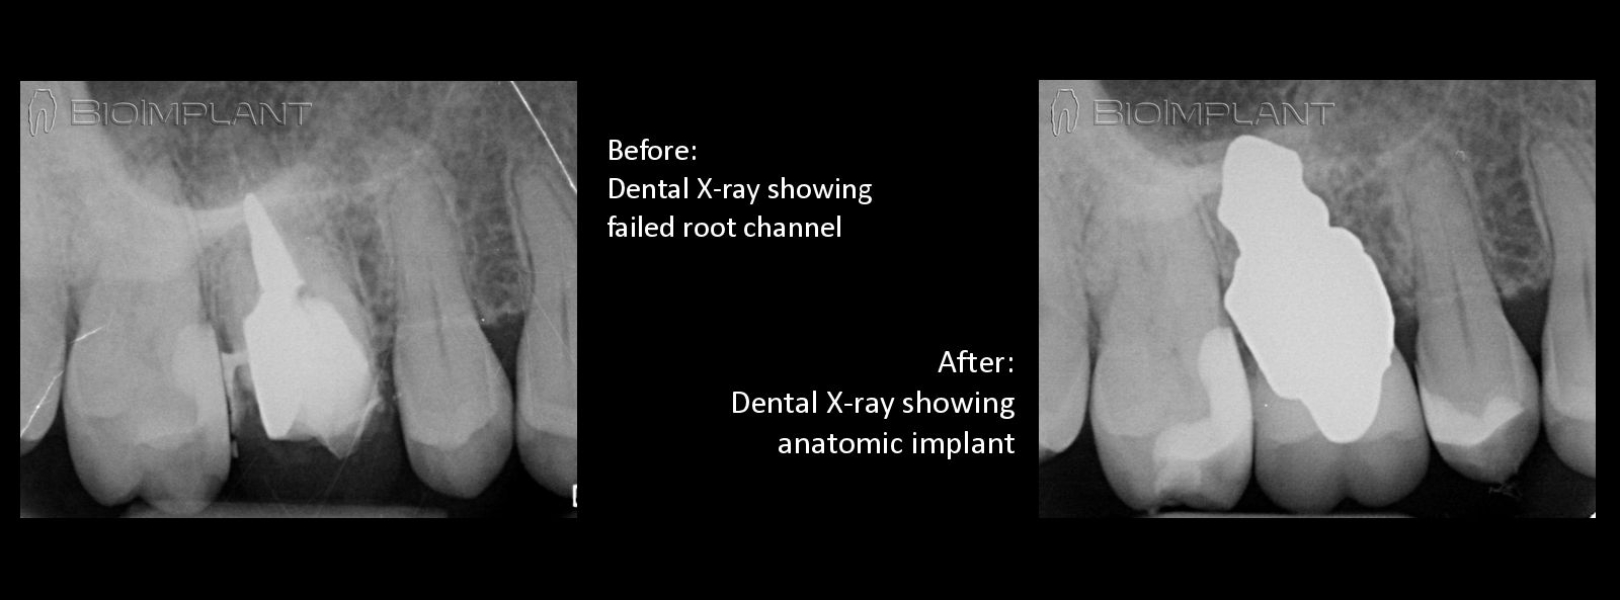 xray_failed_root_canal